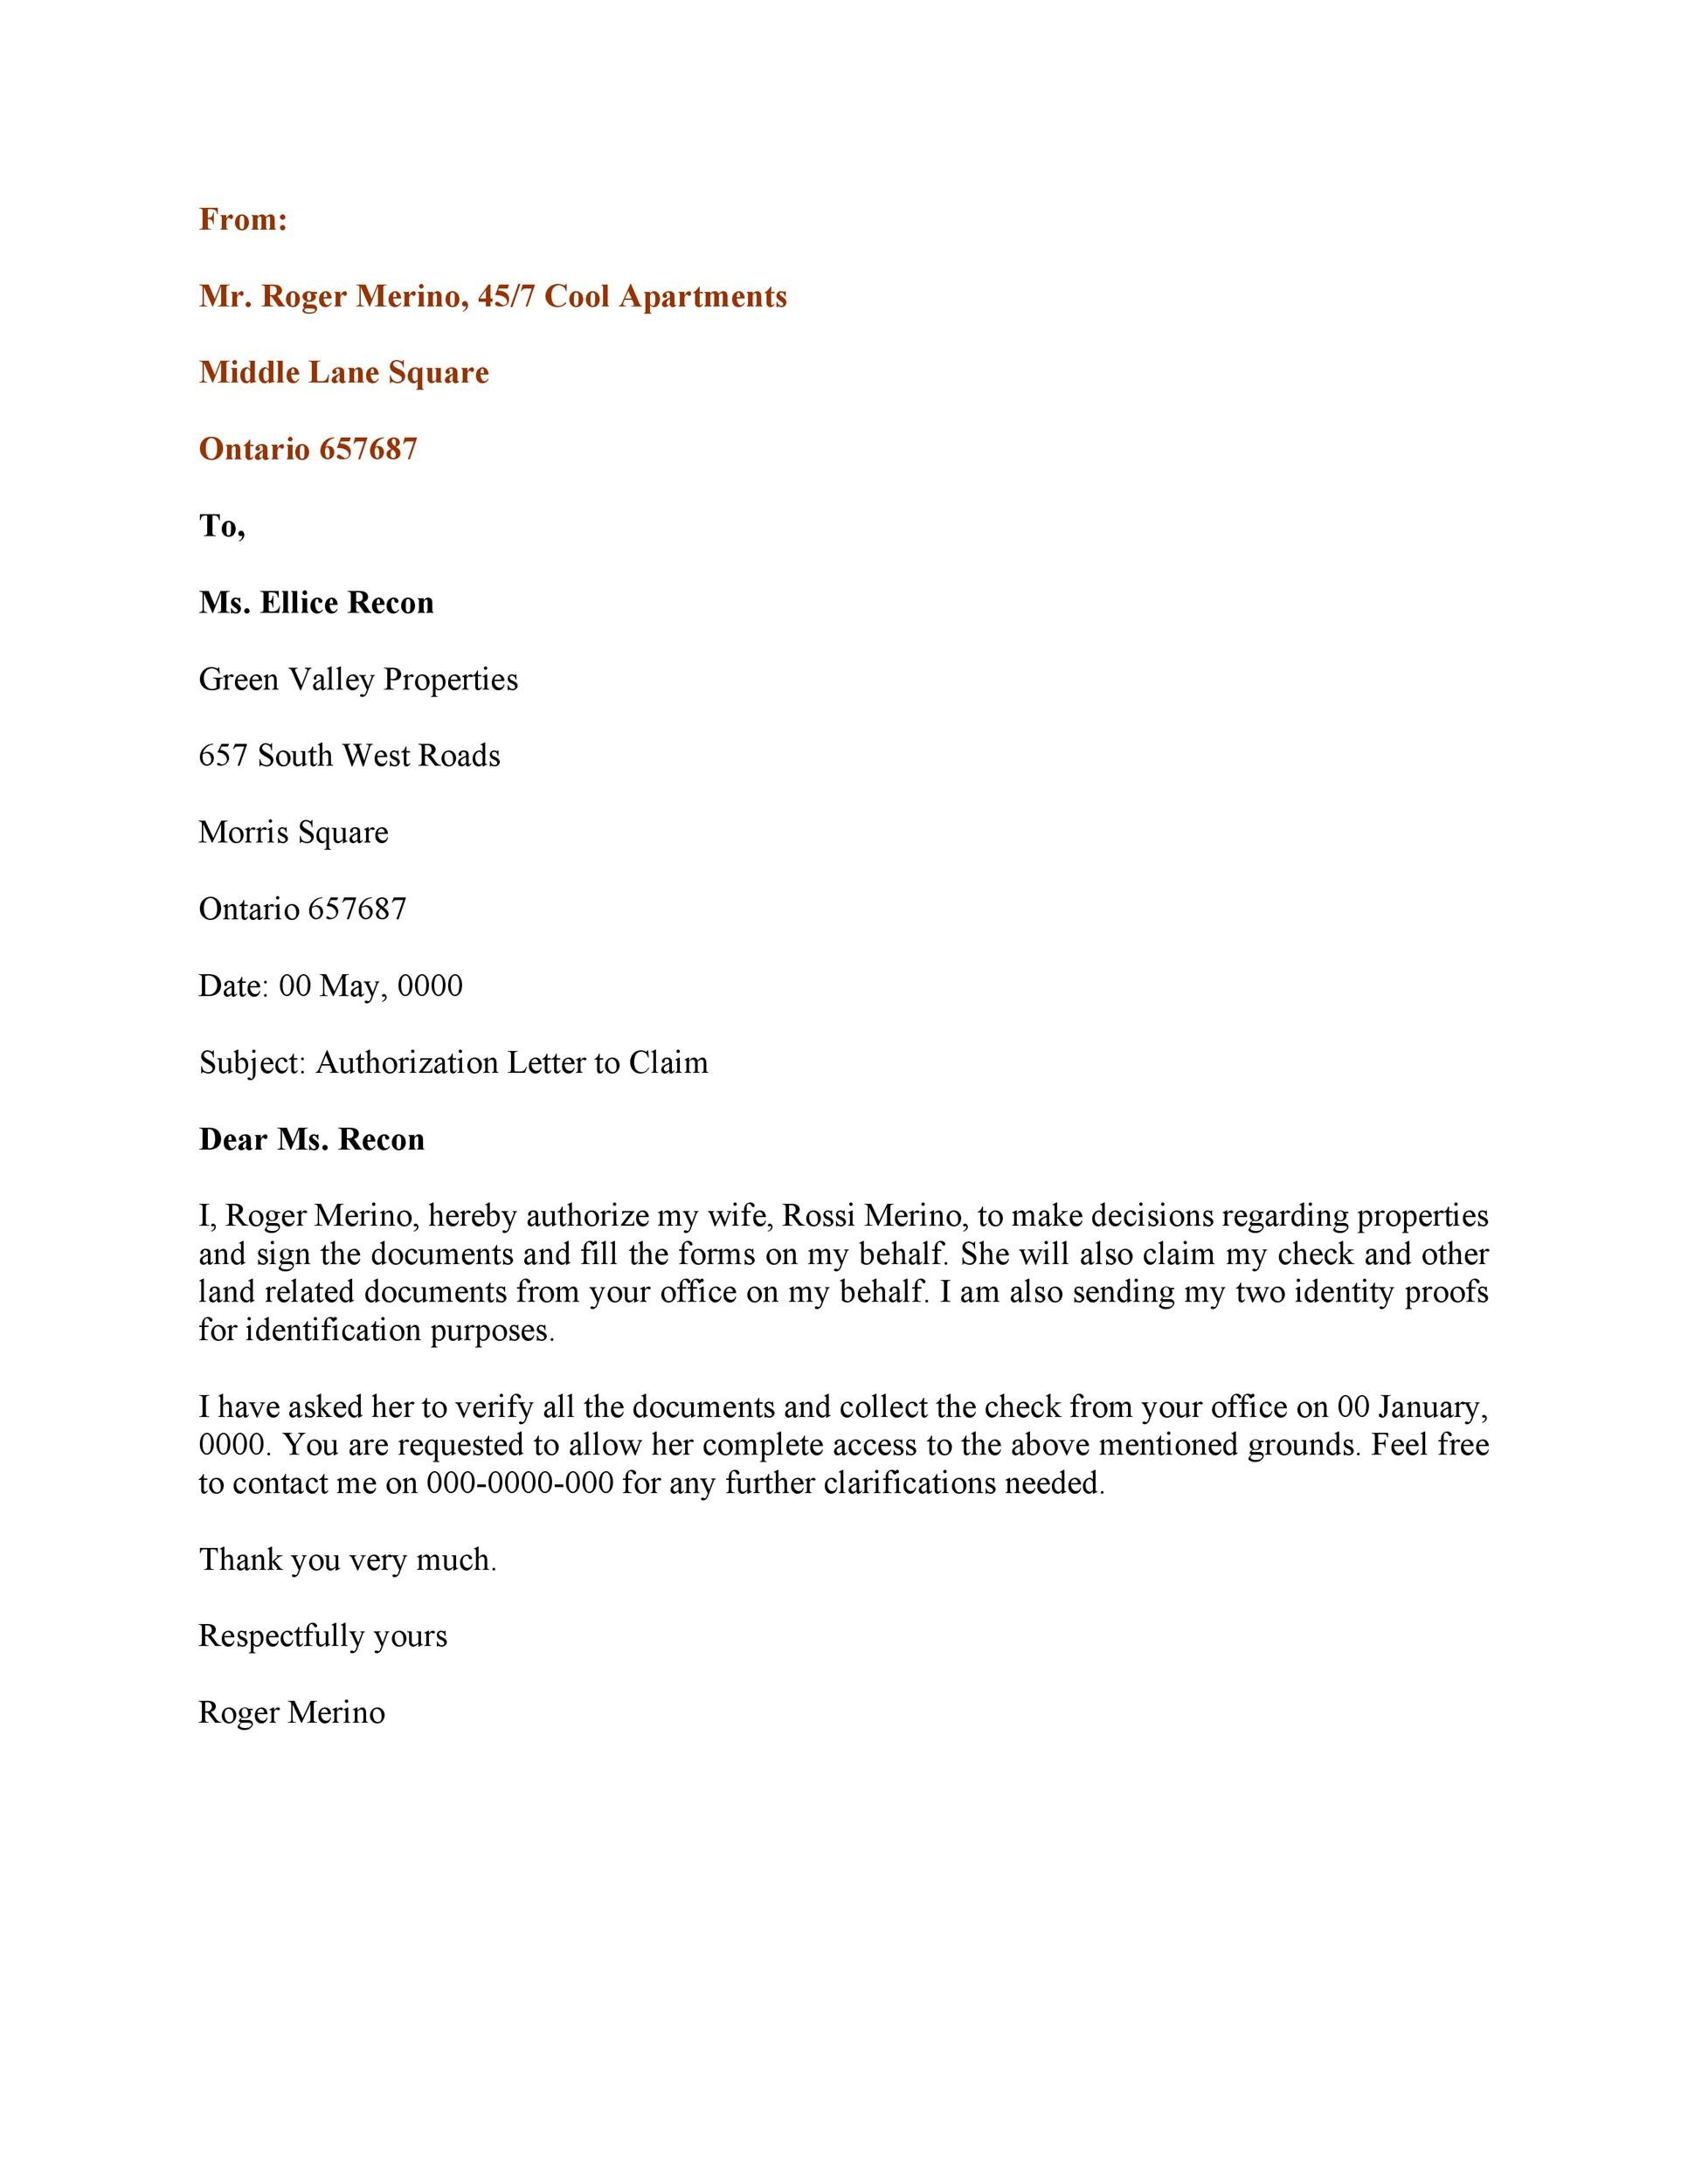 Authorization Letter House authorization letter likewise bank – Sample Letter of Authorization